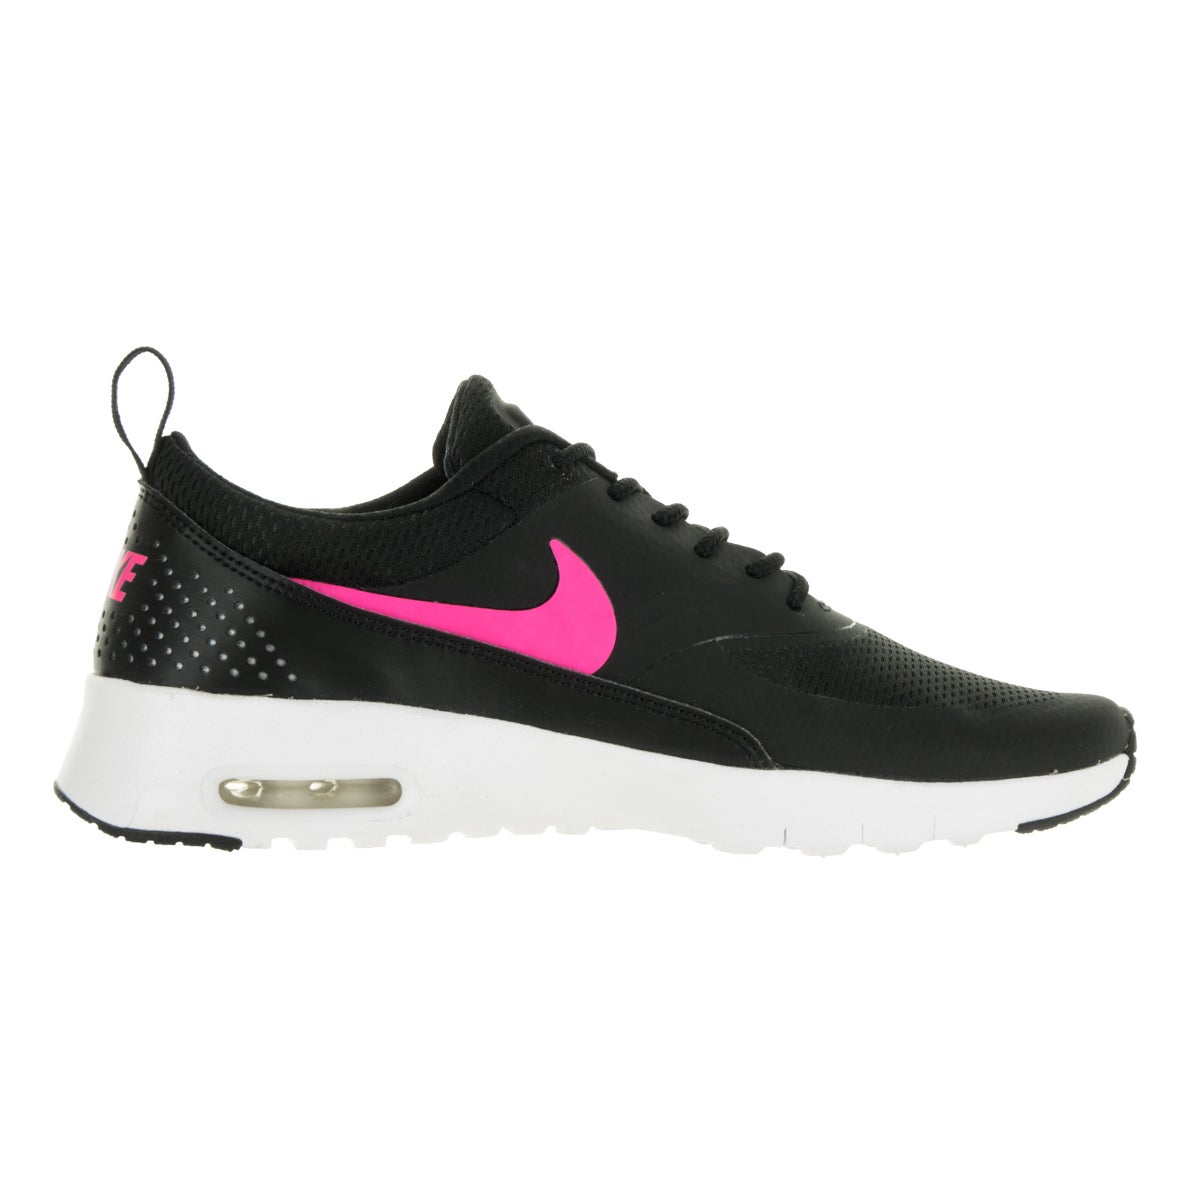 ba33ae7b31 Shop Nike Kids' Air Max Thea Black, Hyper Pink, and White Mesh Running Shoes  - Free Shipping Today - Overstock - 13394683